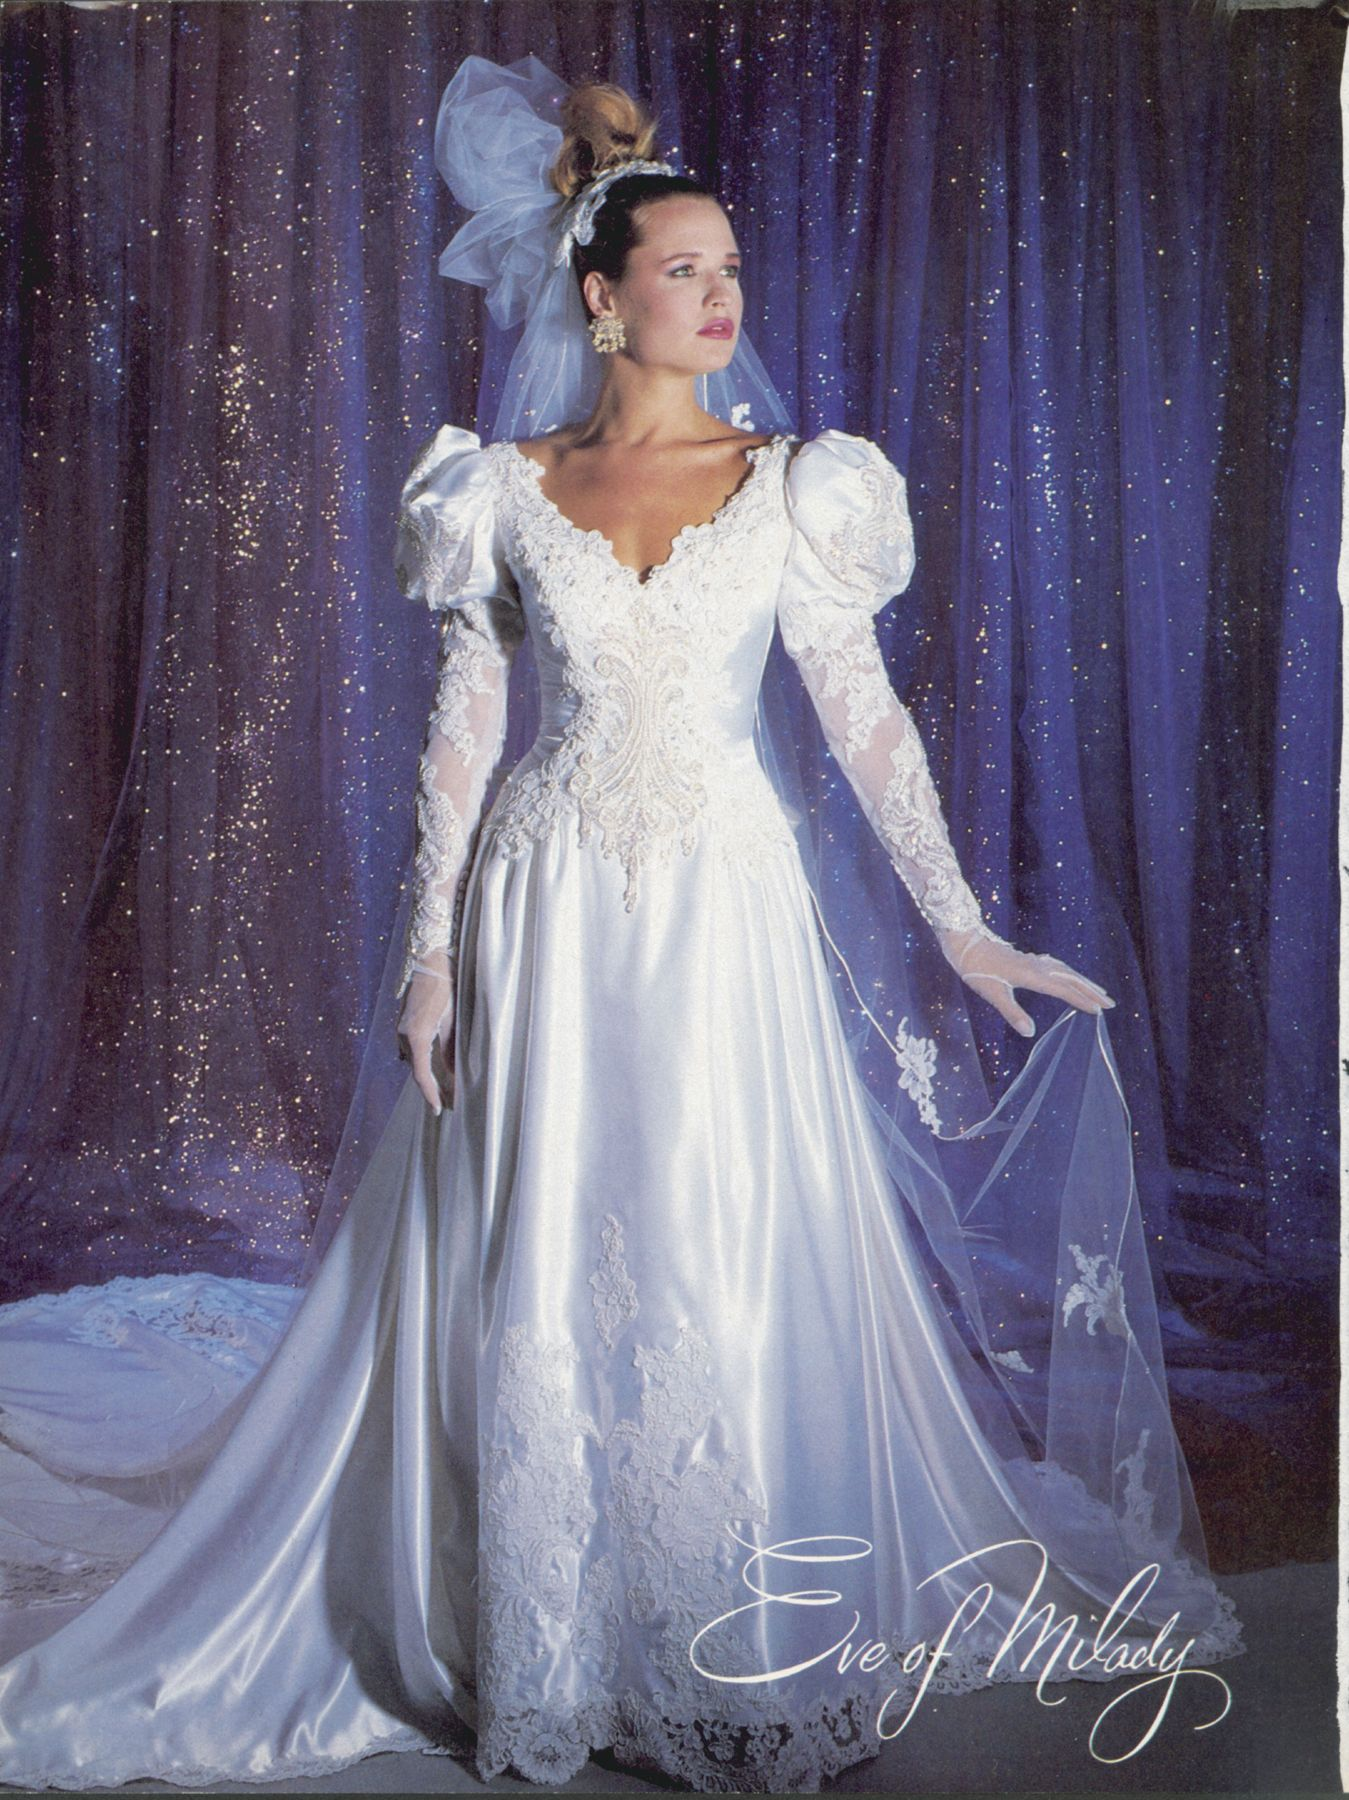 Eve of milady wedding dresses with - I Love Eve Of Milady Gowns Feb Mar Brides 1986